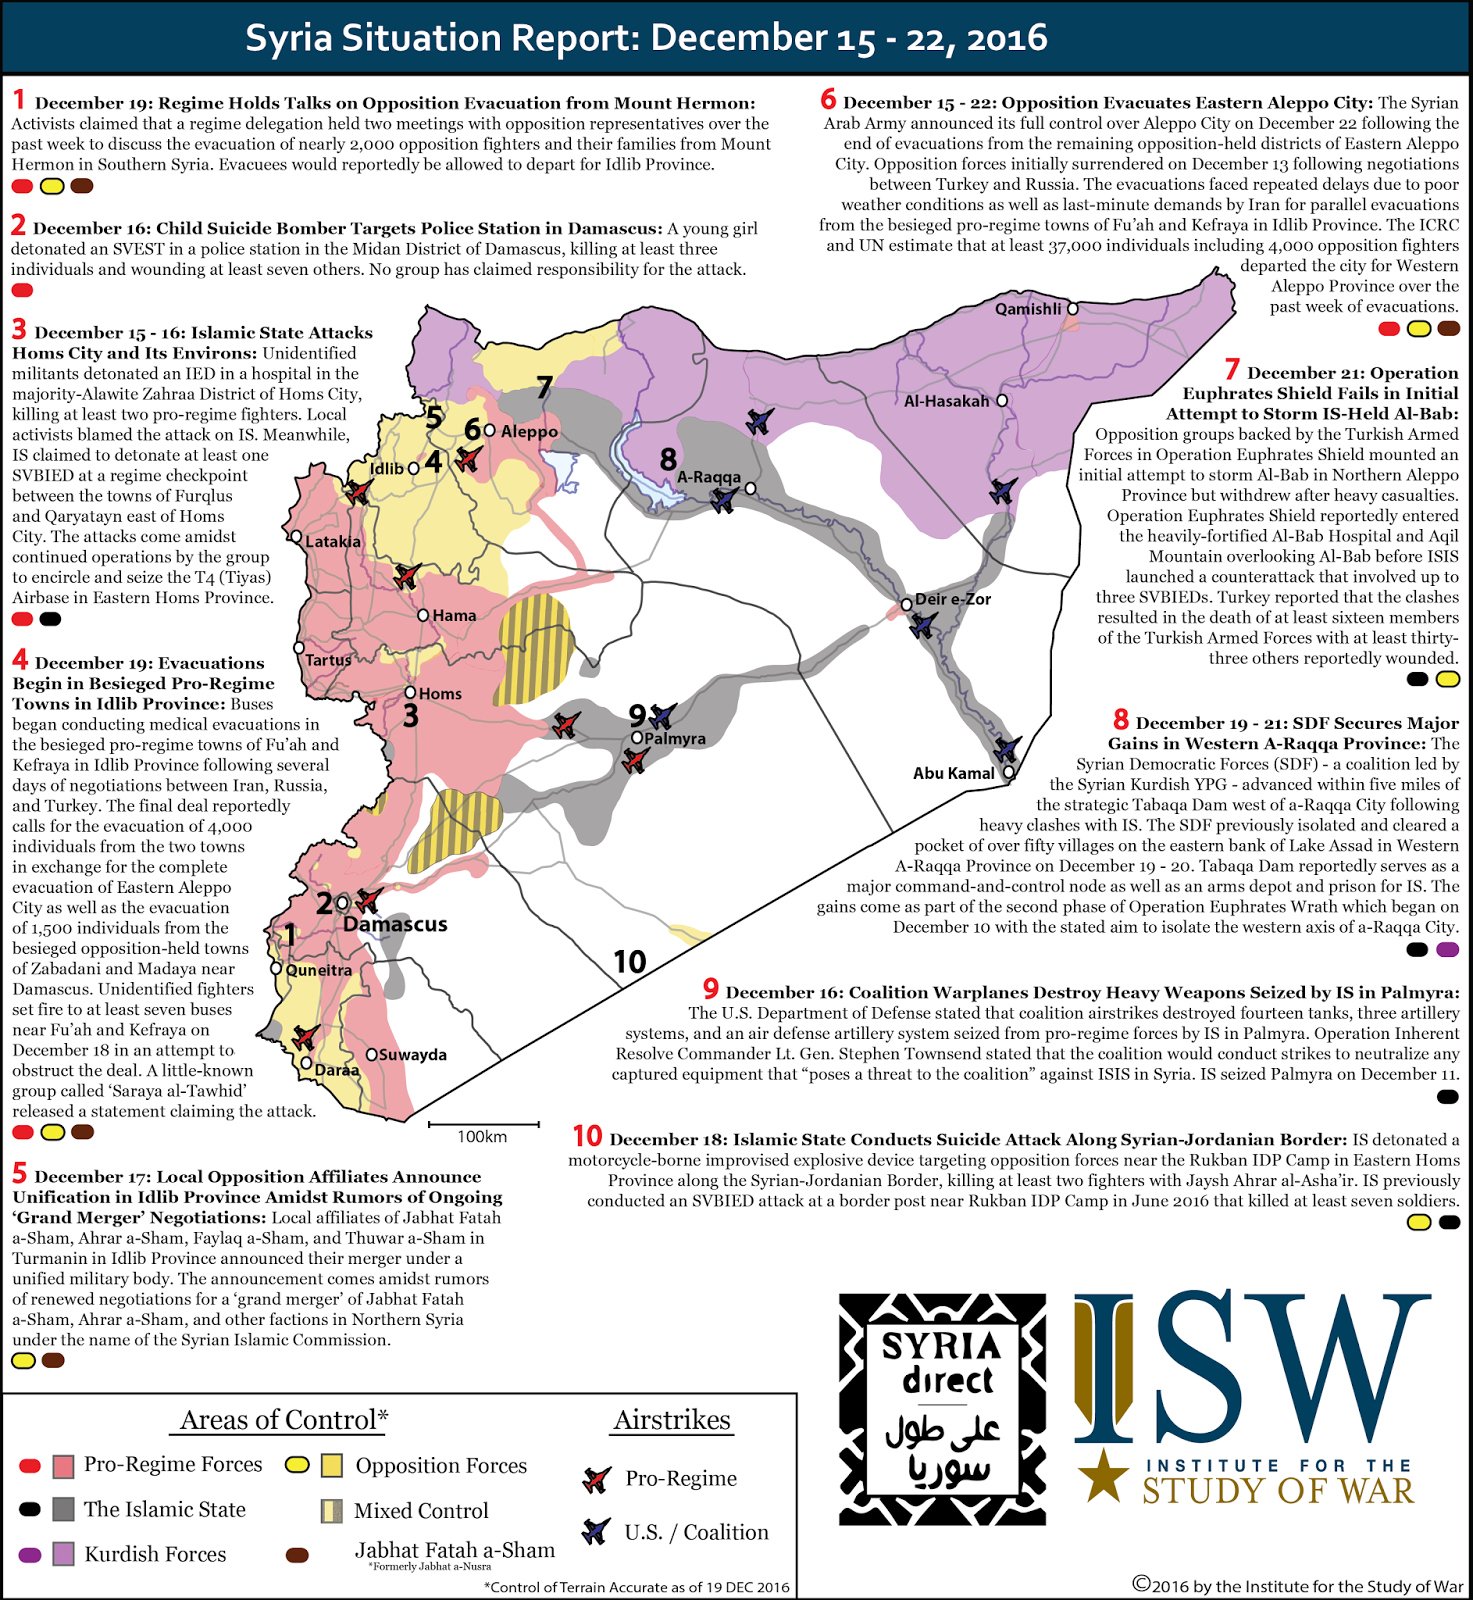 Syria Situation Report: December 15 - 22, 2016